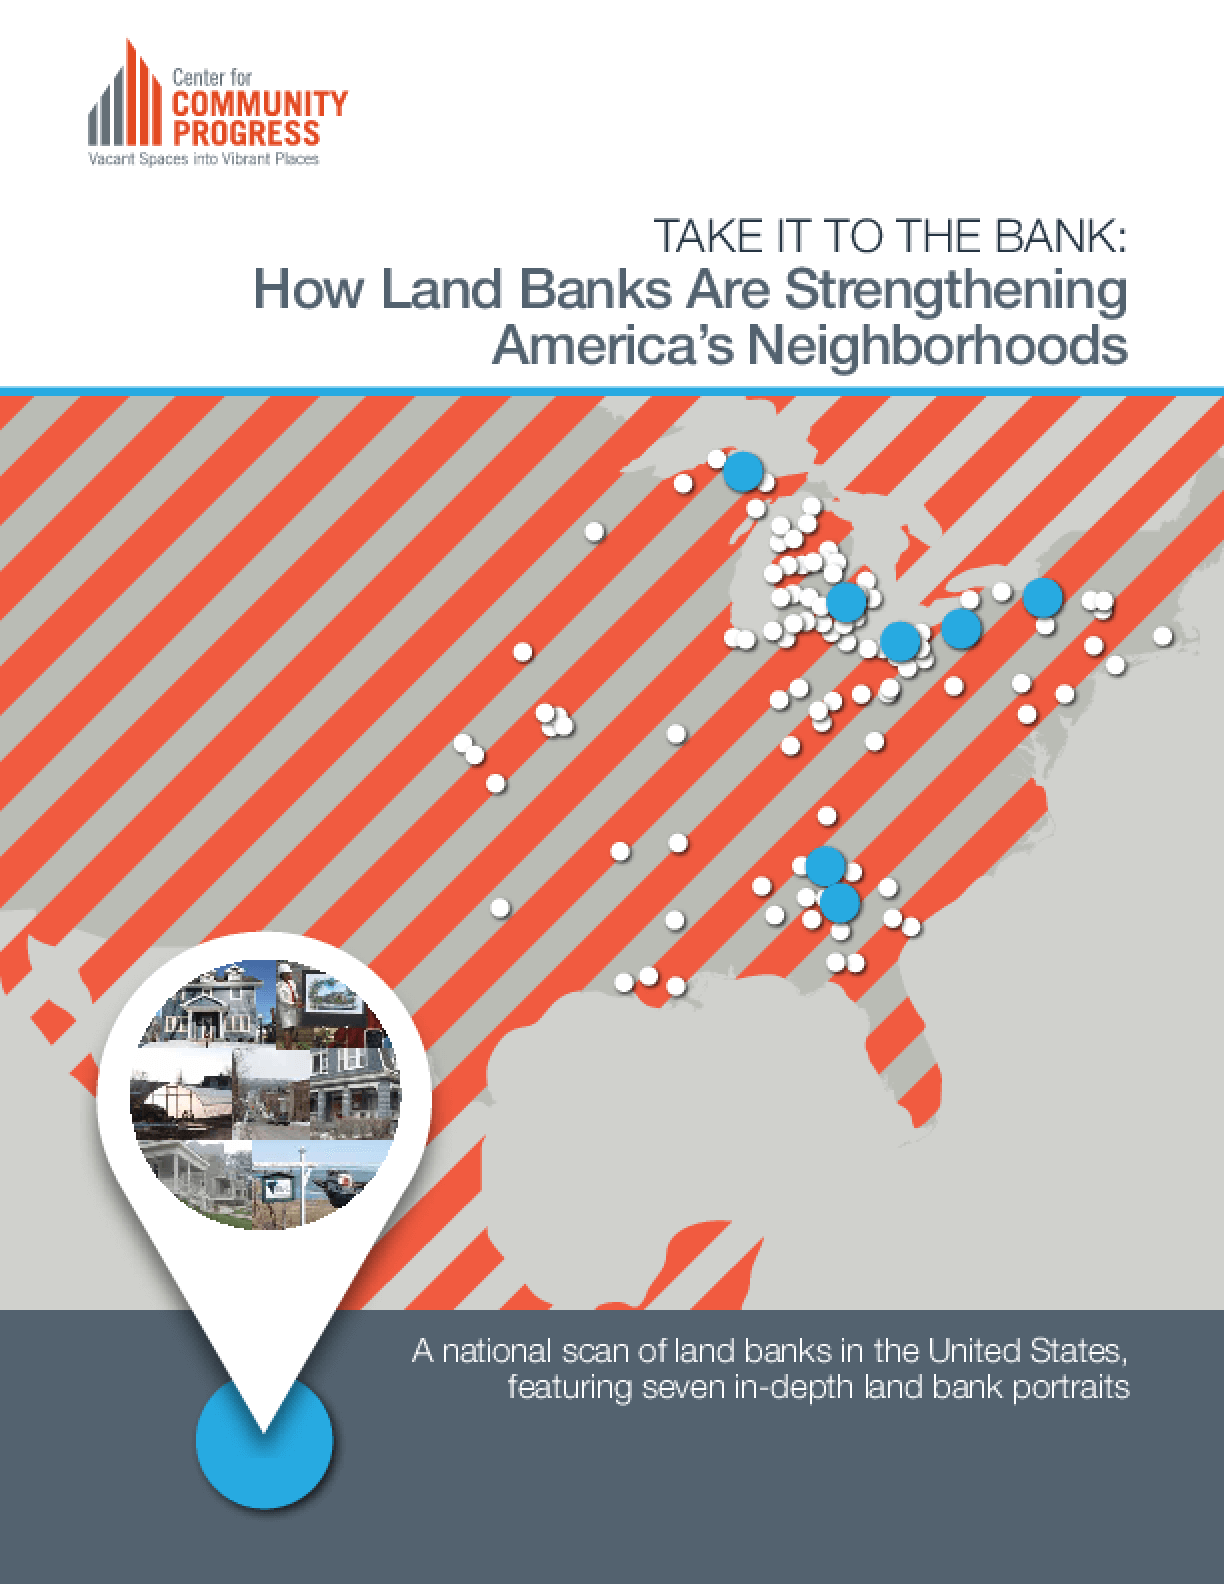 Take It To The Bank: How Land Banks Are Strengthening America's Neighborhoods